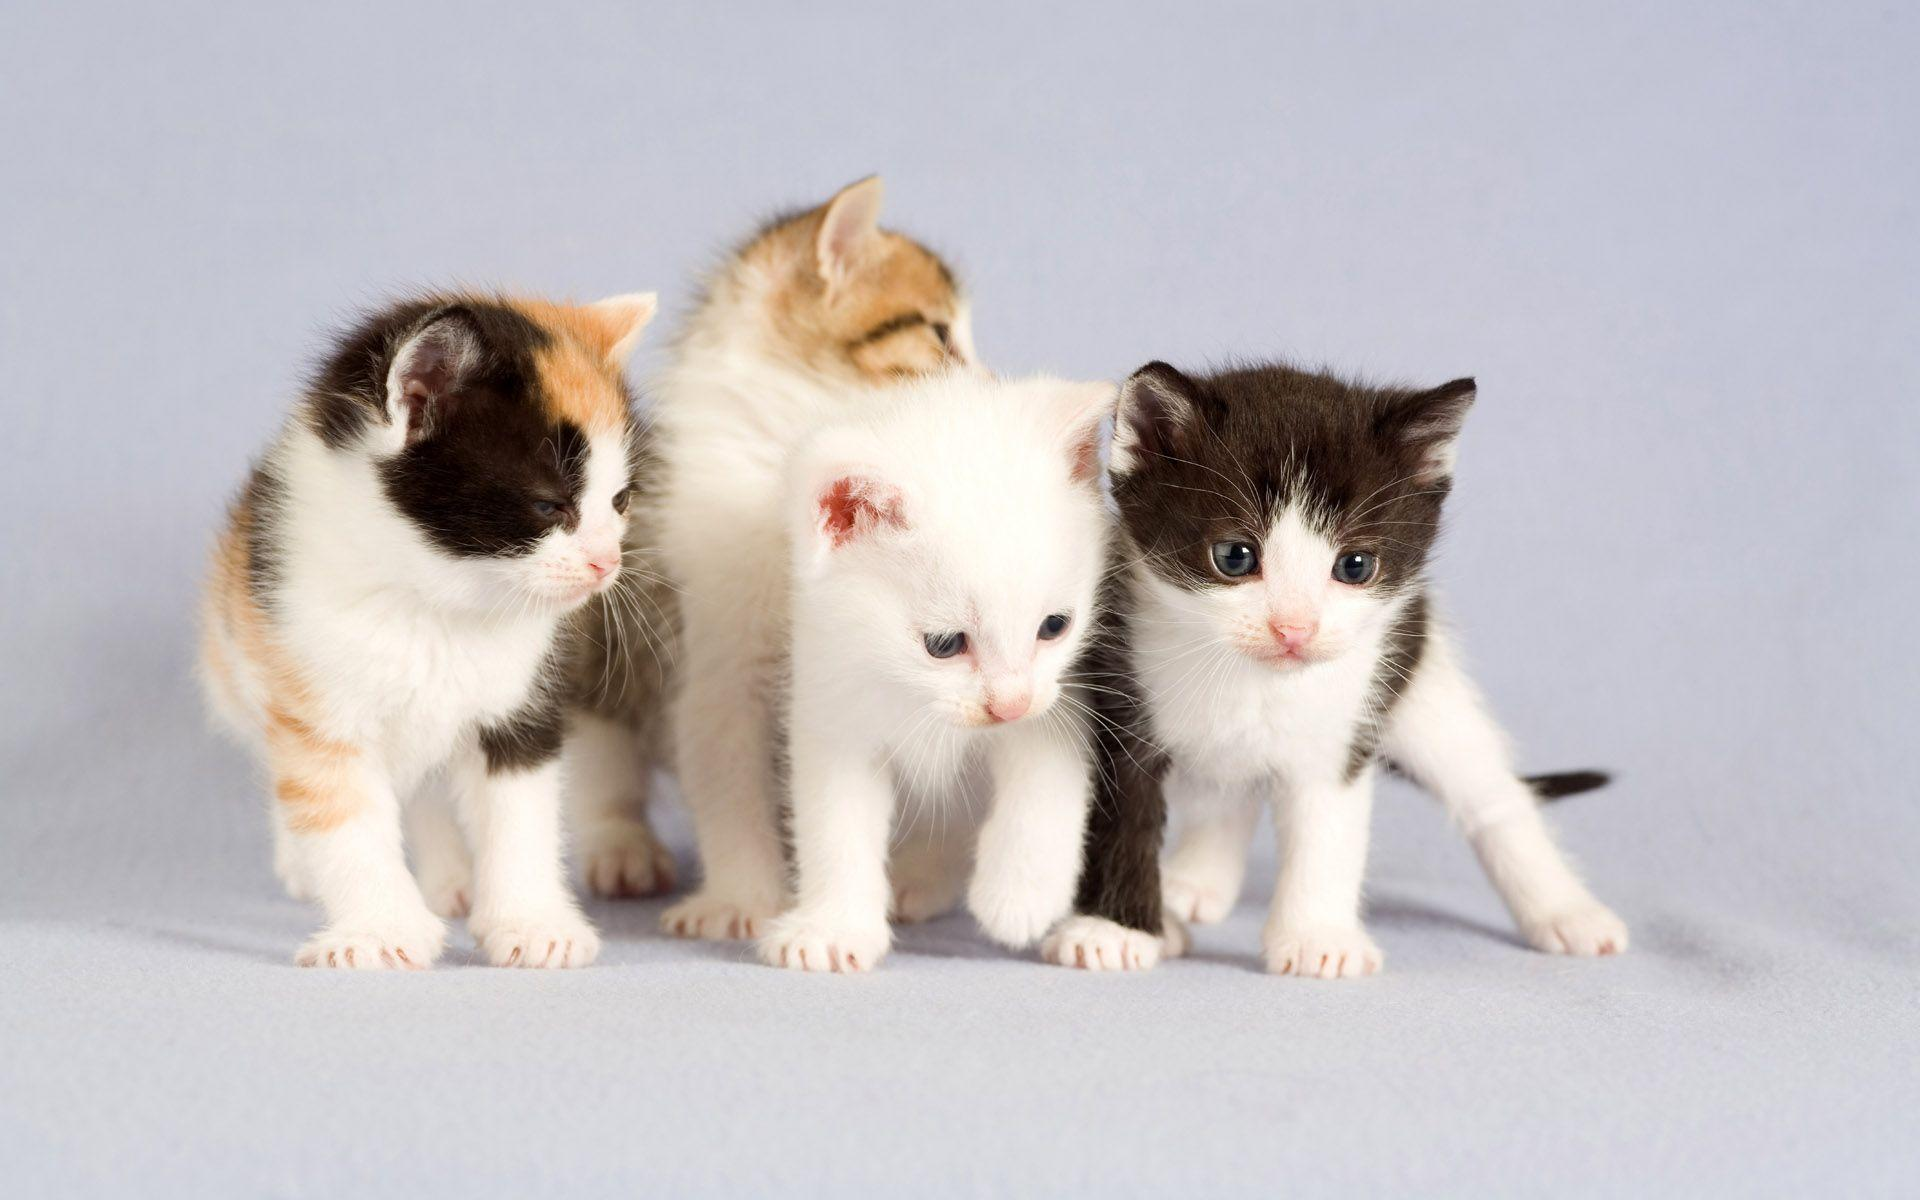 hd cat images free download 4